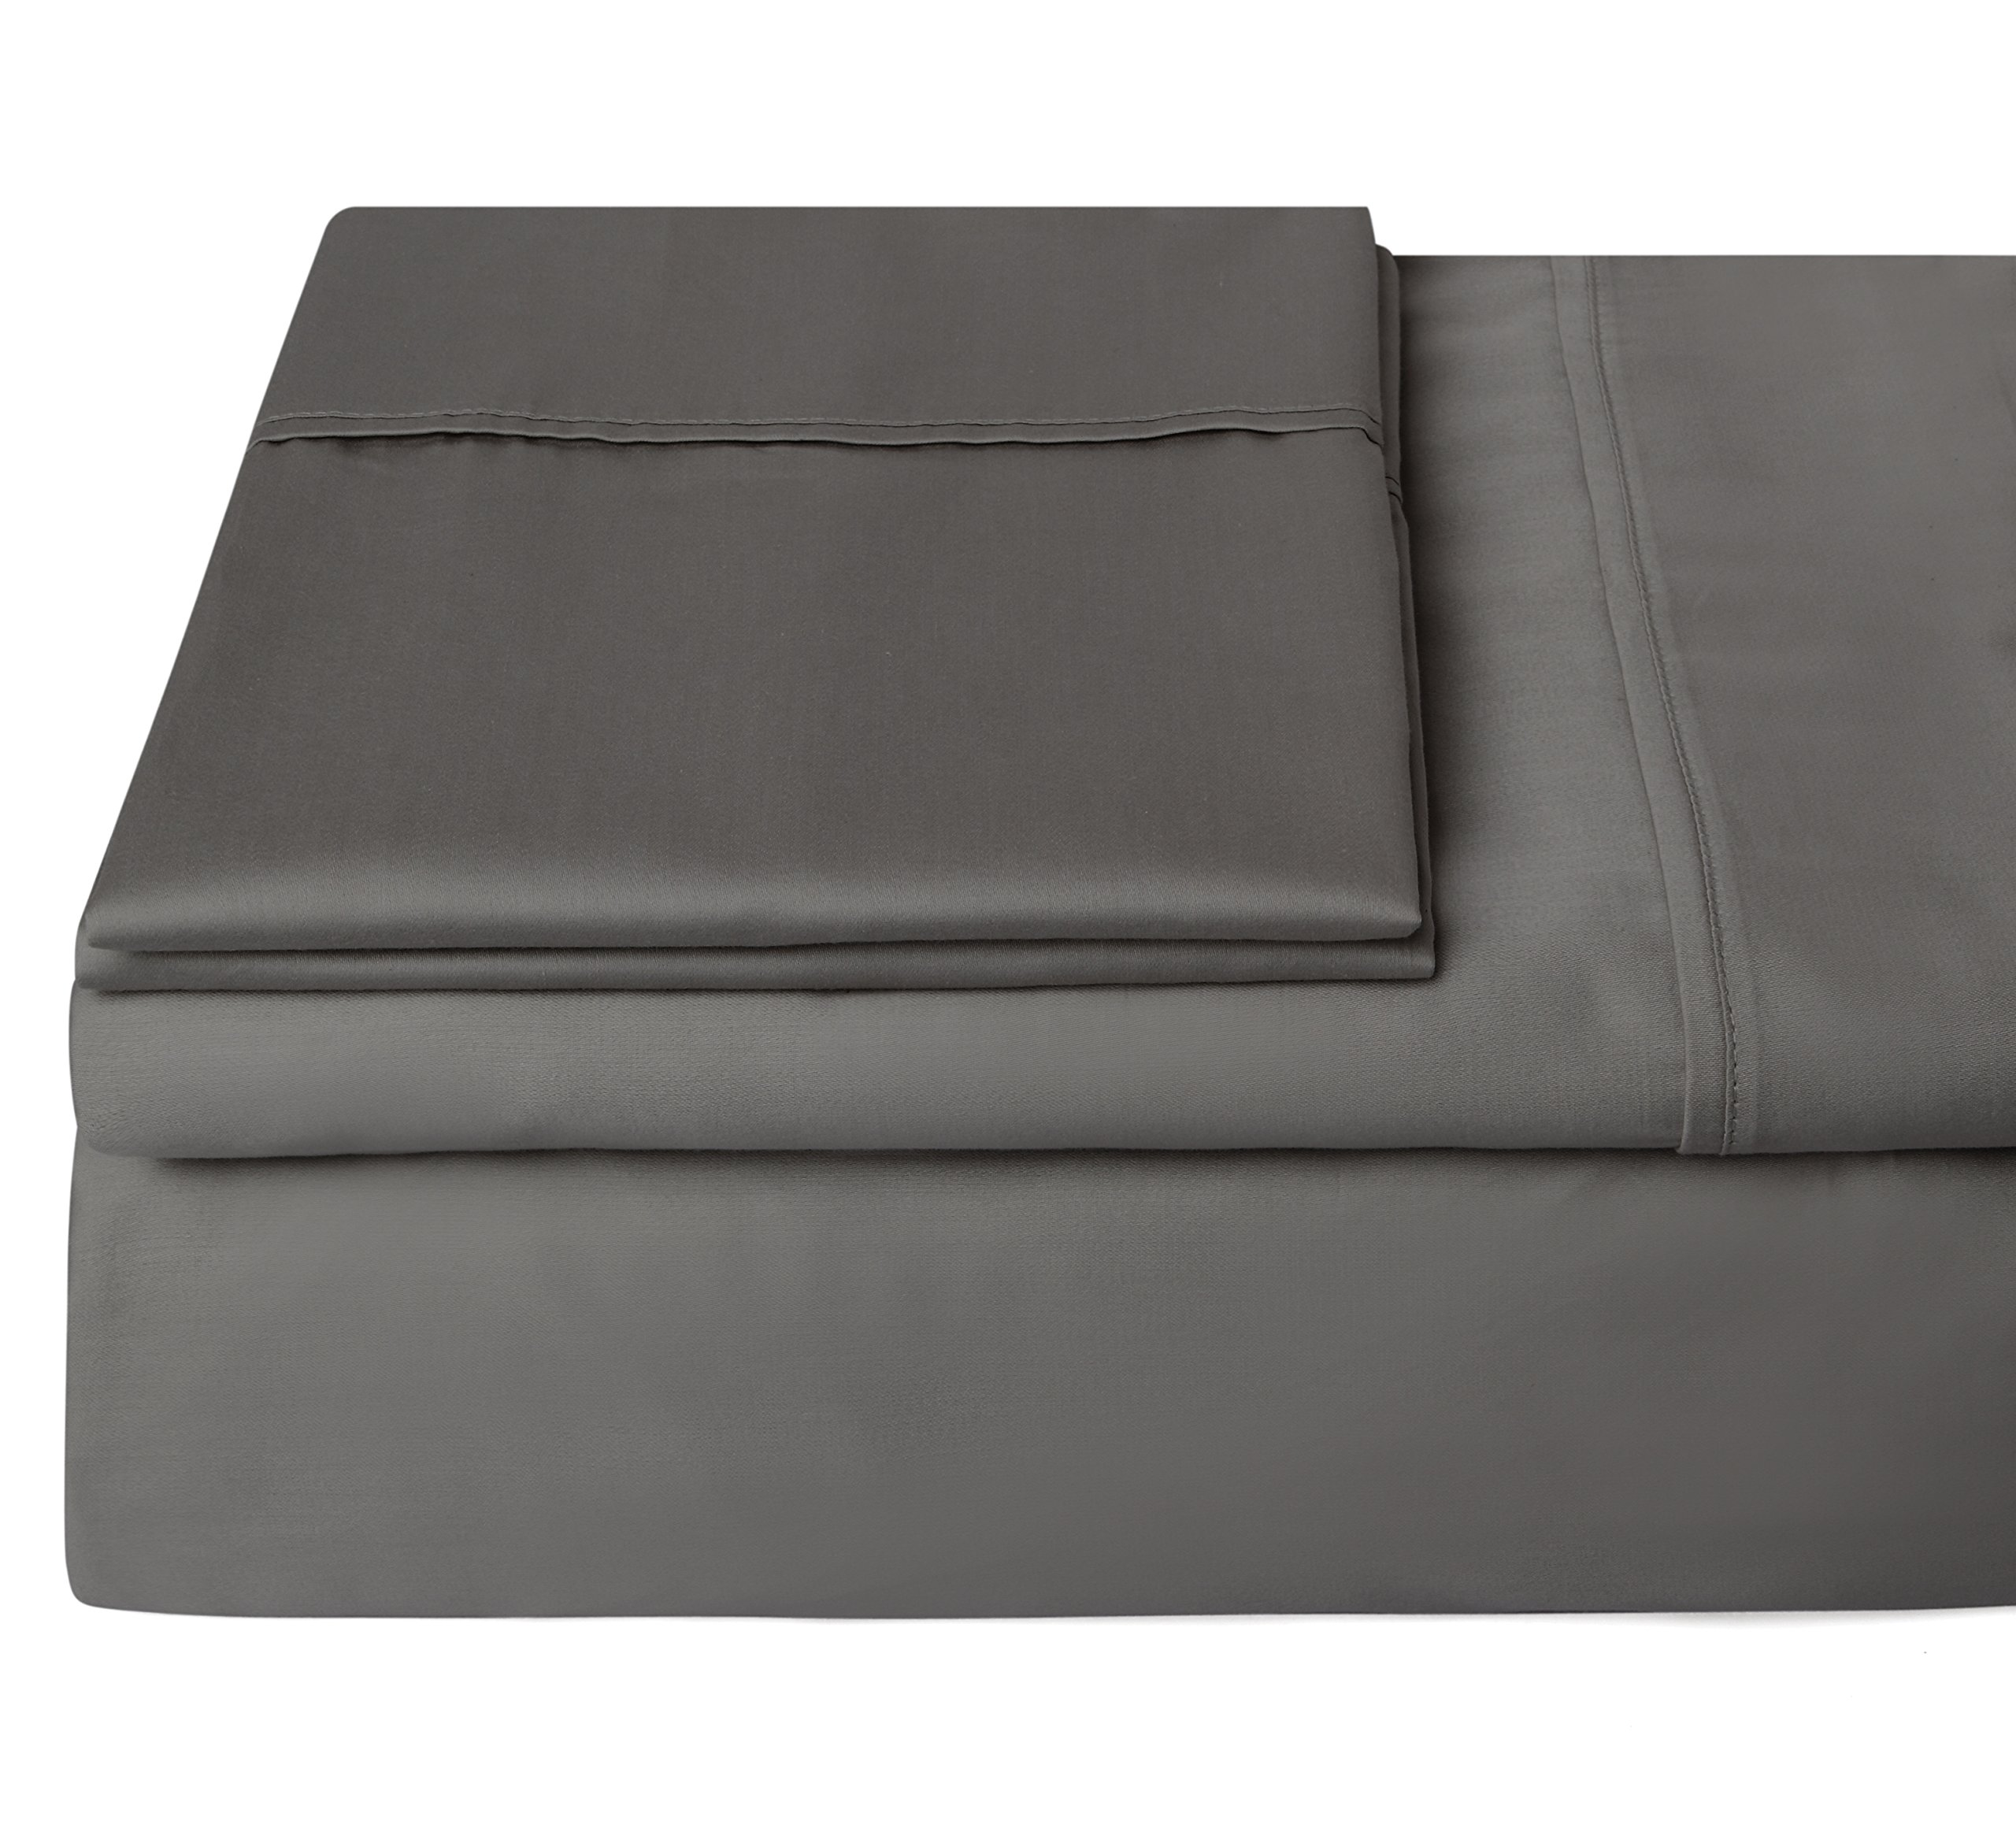 #1 Bedding 400 Thread Count 100% Egyptian Cotton Sheets,Long Staple Cotton,Sateen,Hotel Collection,Luxury,Bestseller Black Friday Deals,Soft Sheets & Pillowcases -King (Dark Gray) -Steffani